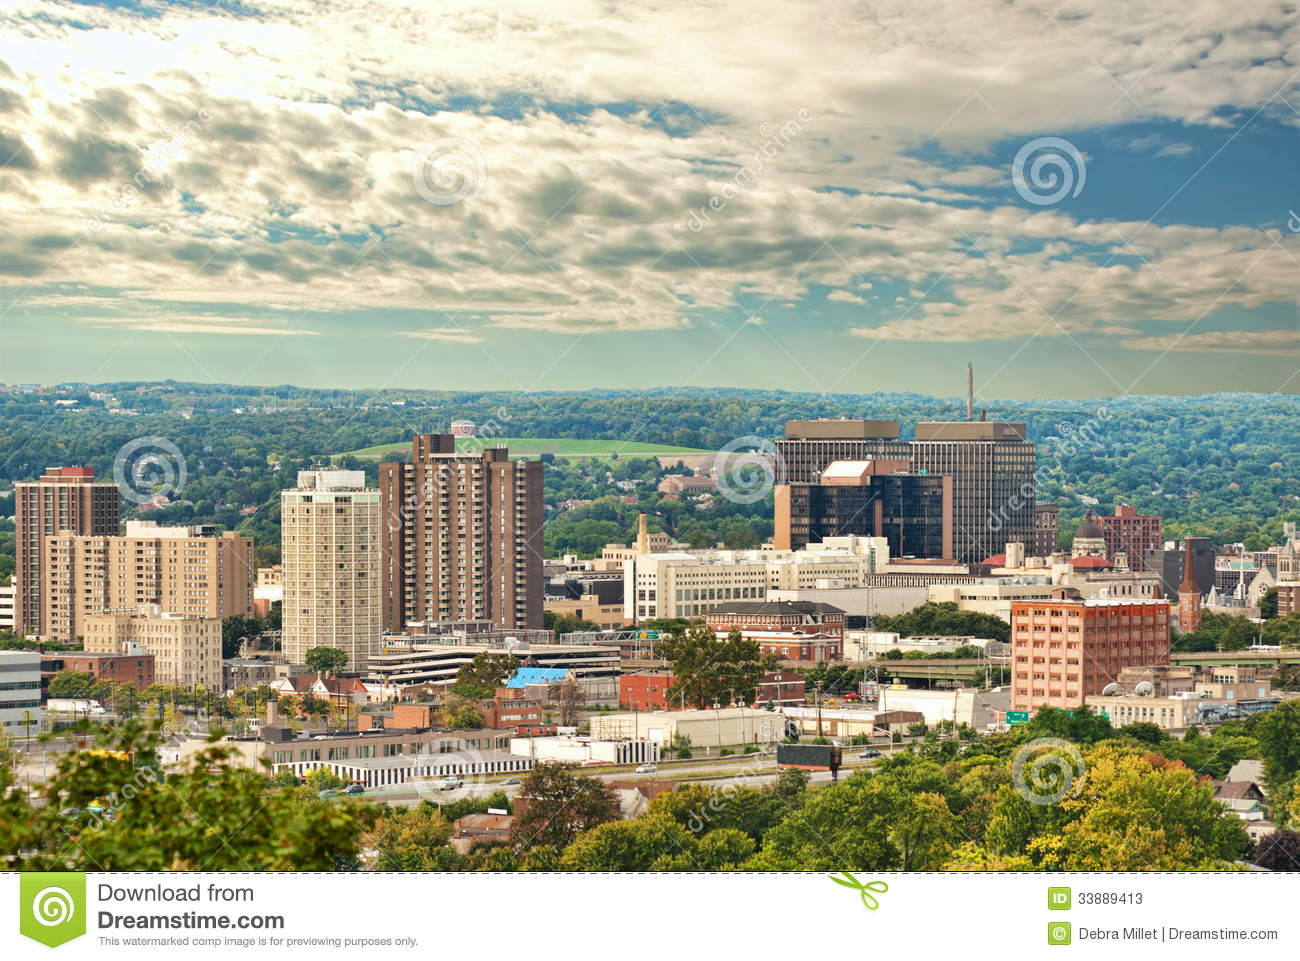 Syracuse new york stock image image of york landscape for Plan and print syracuse